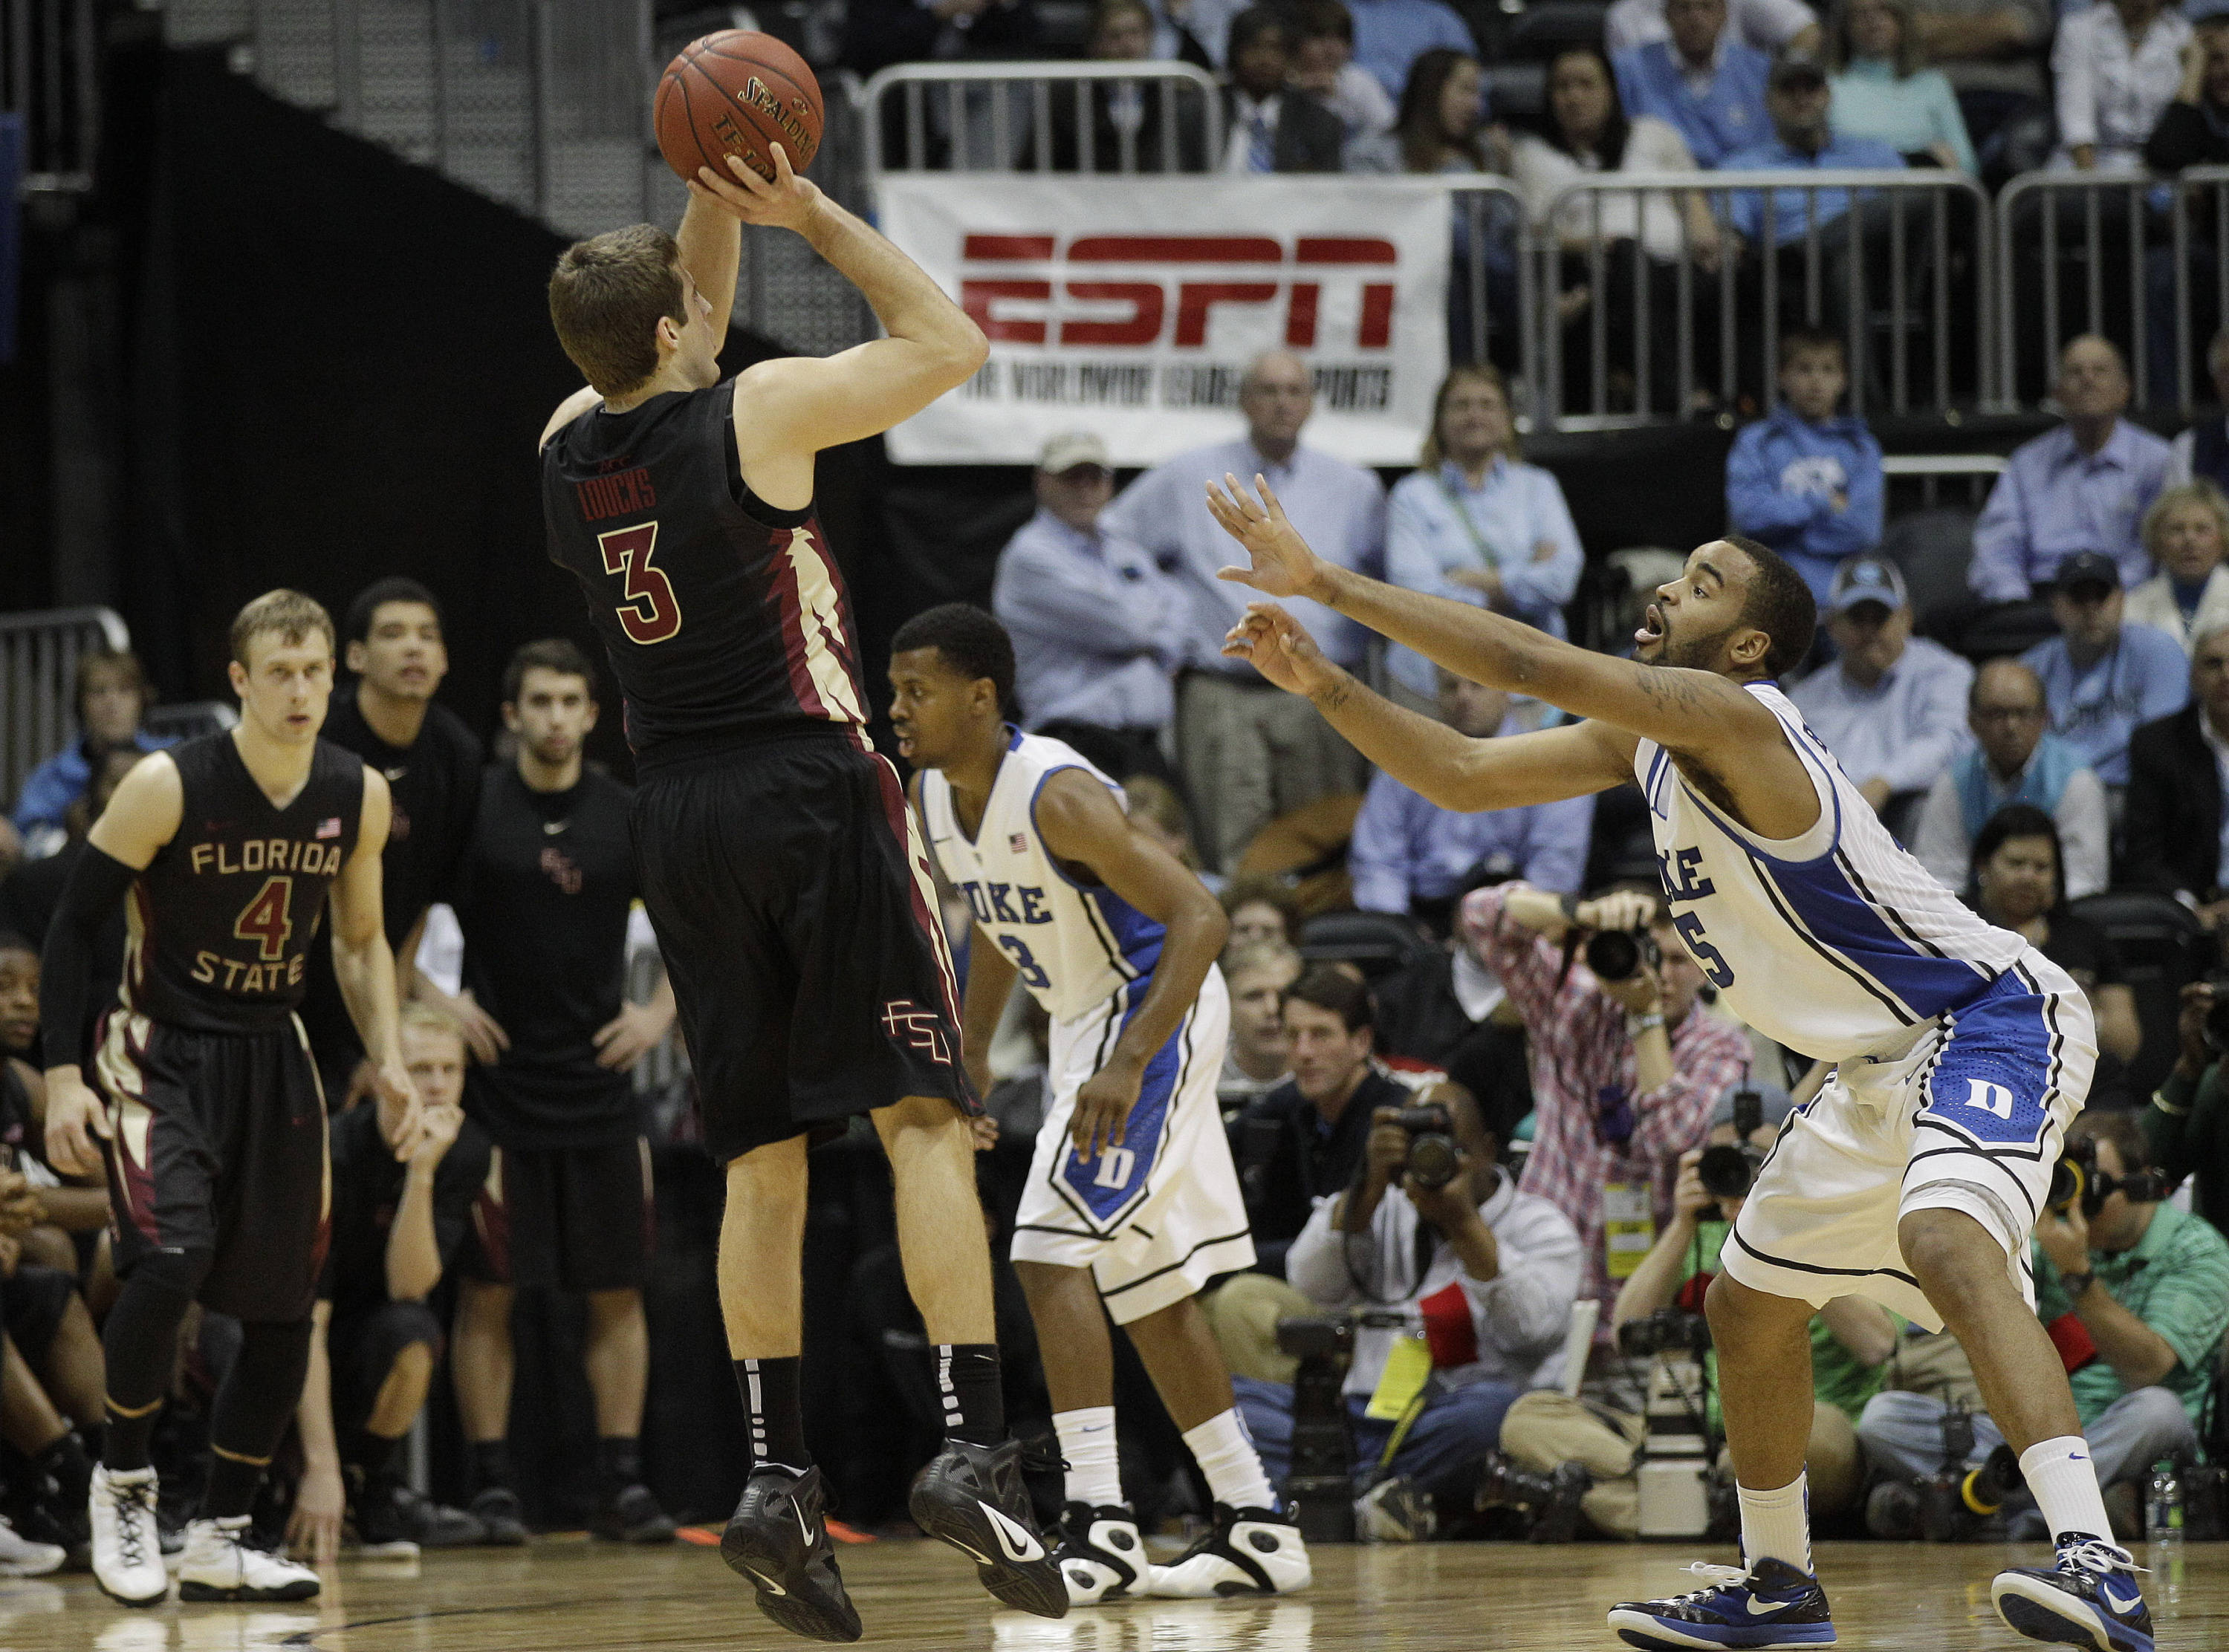 Florida State guard Luke Loucks (3) shoots over Duke forward Josh Hairston (15) late in the second half of of an NCAA college basketball game in the semifinals of the Atlantic Coast Conference tournament, Saturday, March 10, 2012, in Atlanta. Florida State won 62-59. (AP Photo/Chuck Burton)